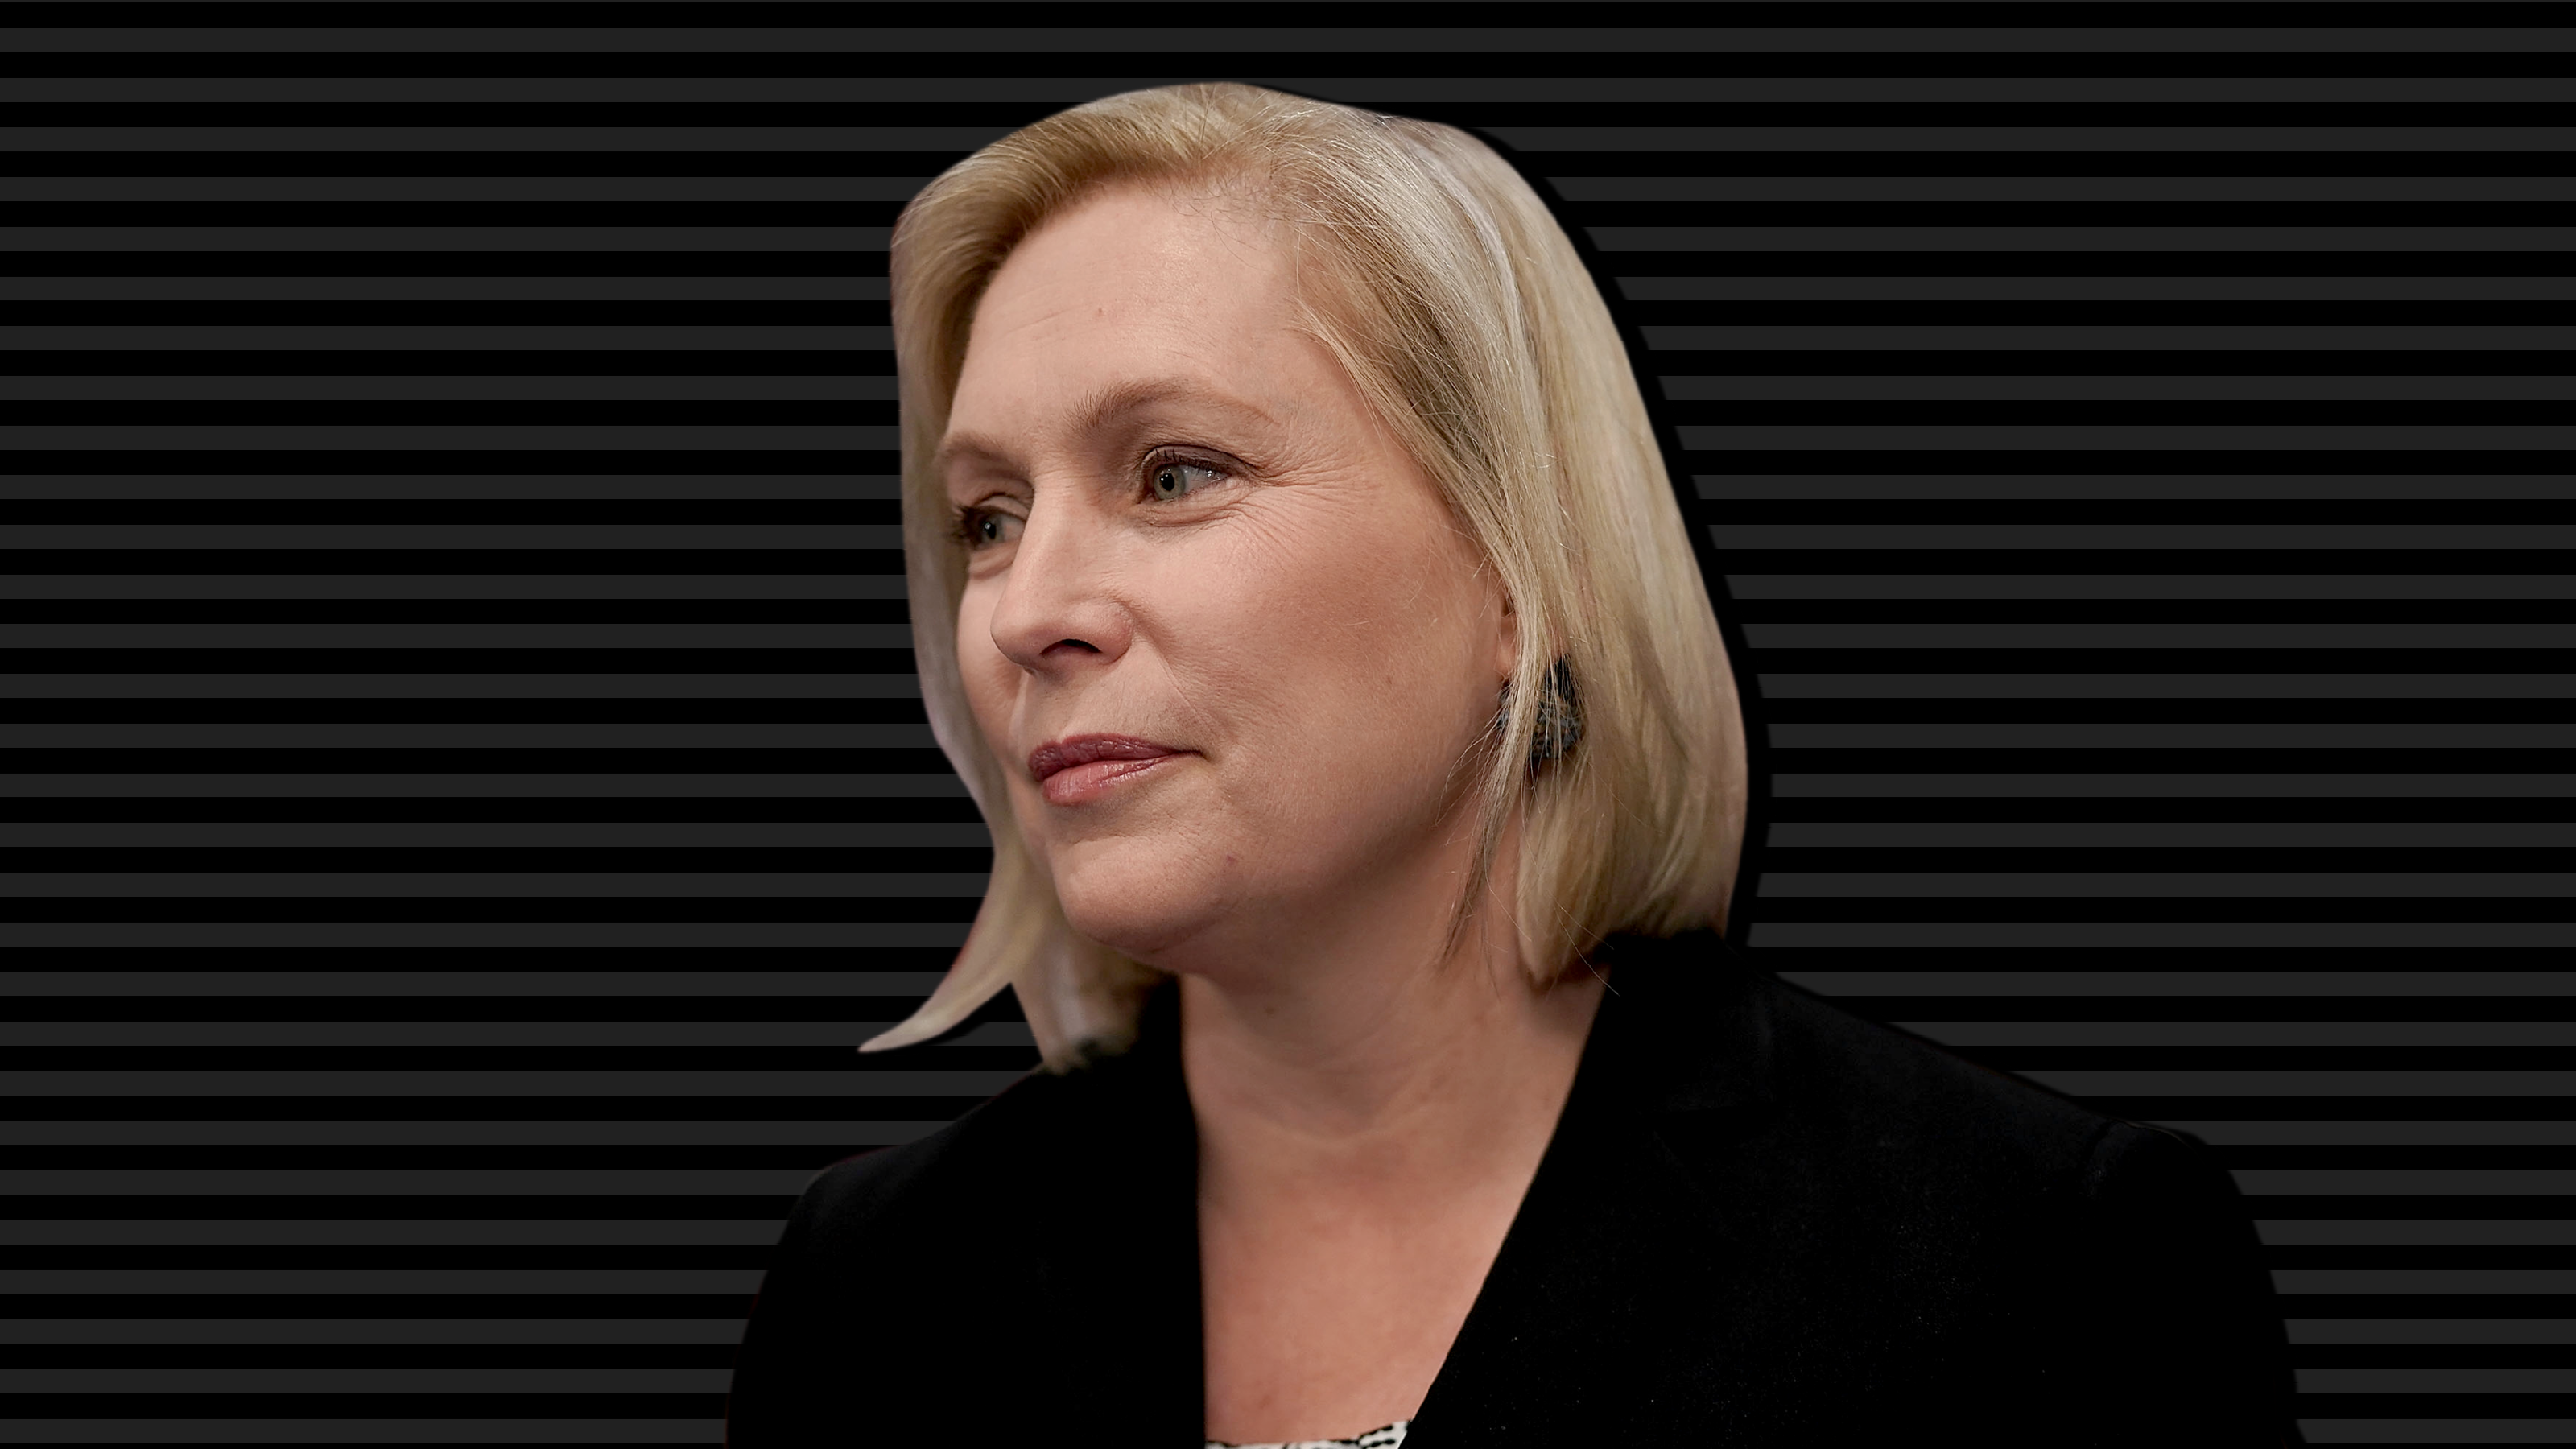 7 Issues Kirsten Gillibrand Will Champion as a Presidential Candidate